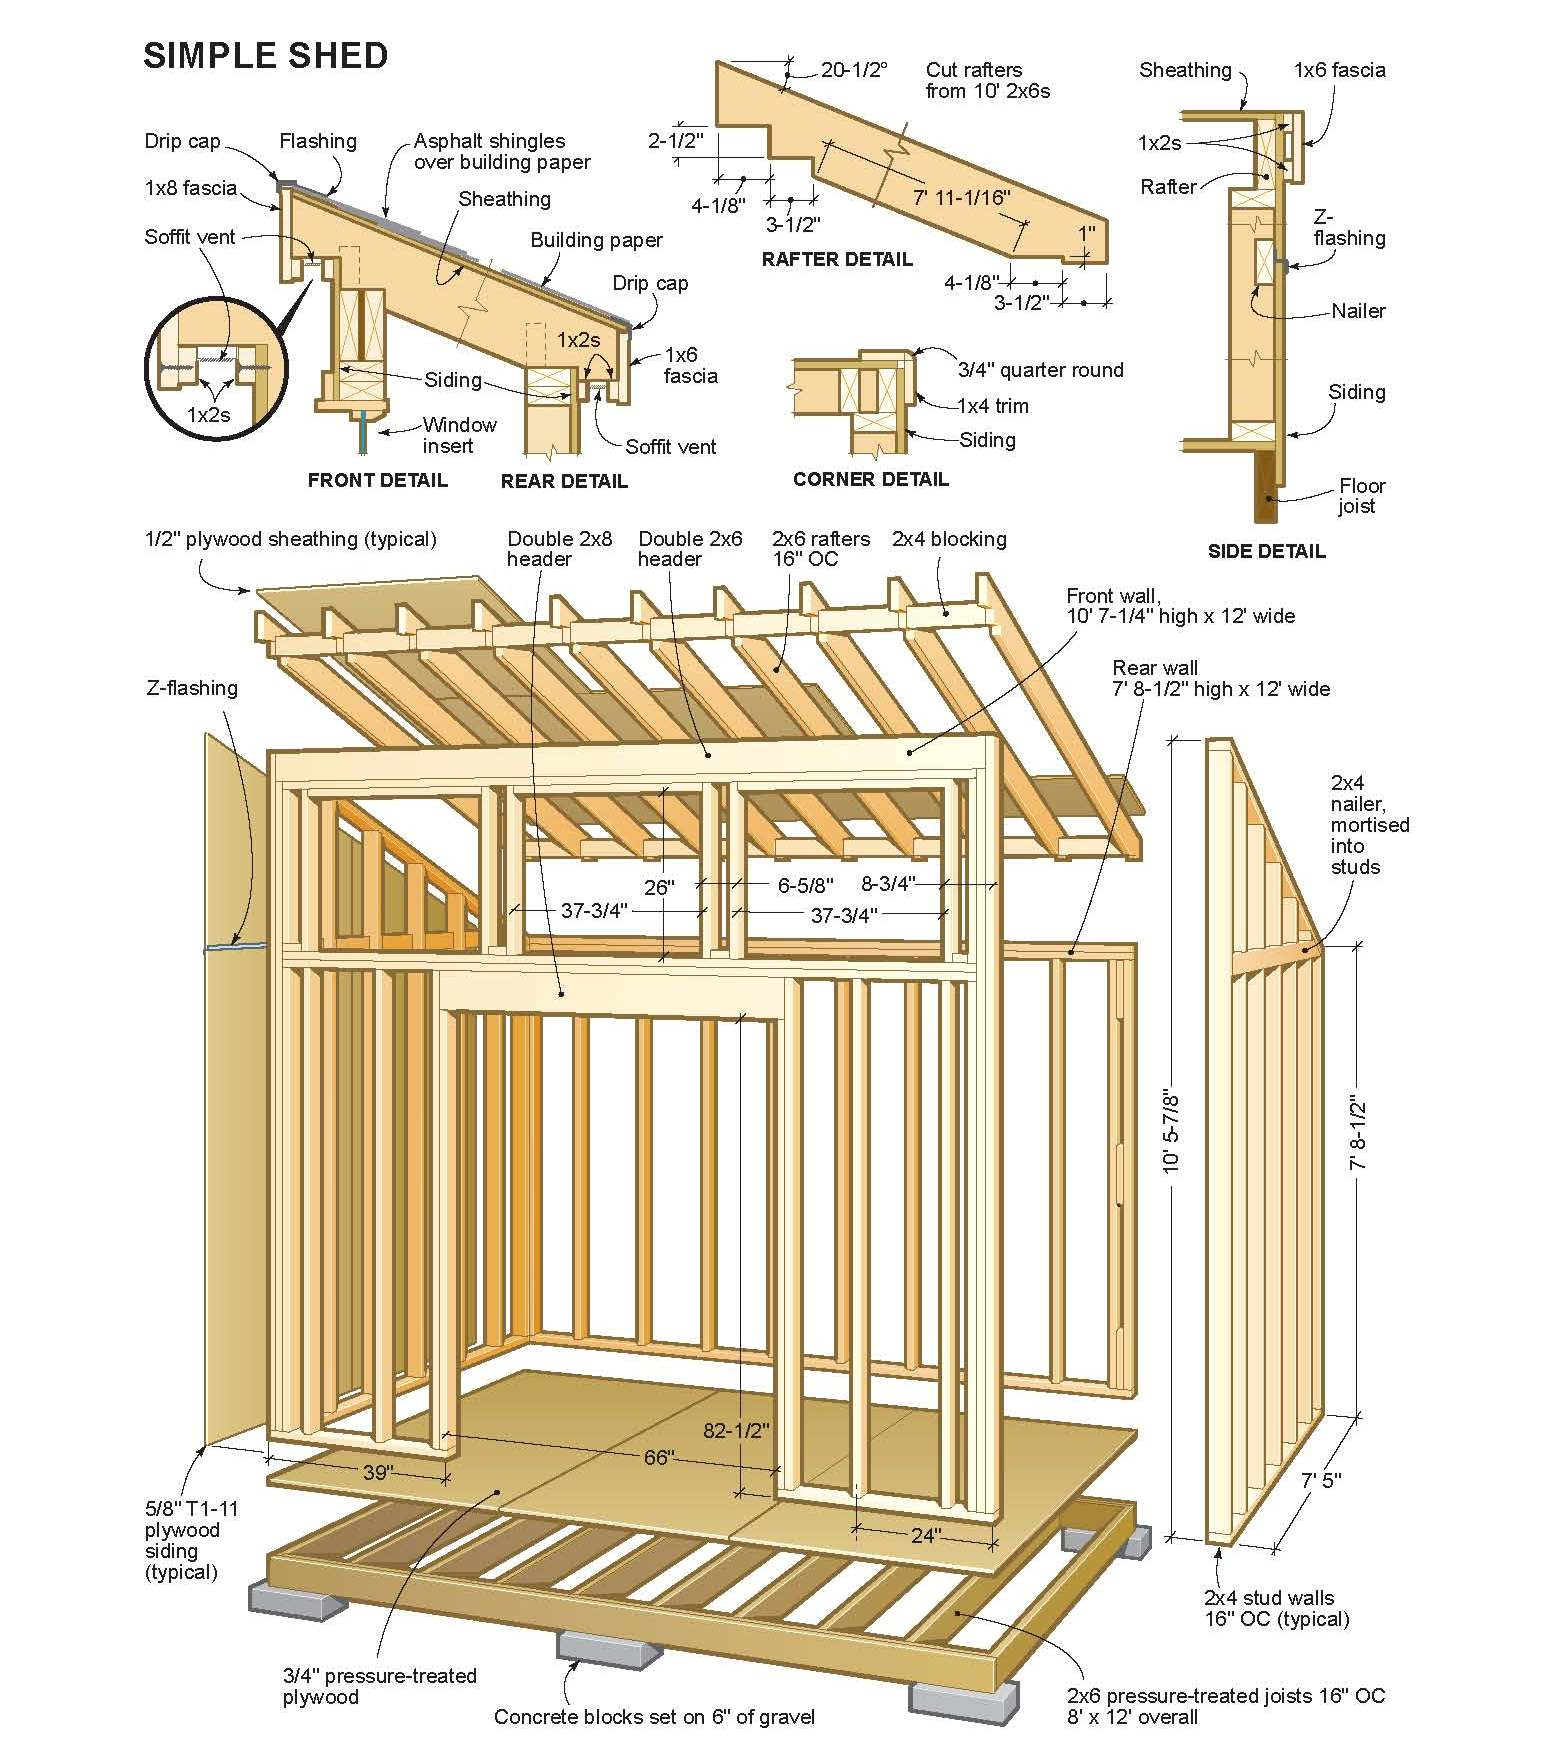 Outdoor Shed Blueprints   Outdoor Shed Blueprints Better To Build Or Buy  Putter